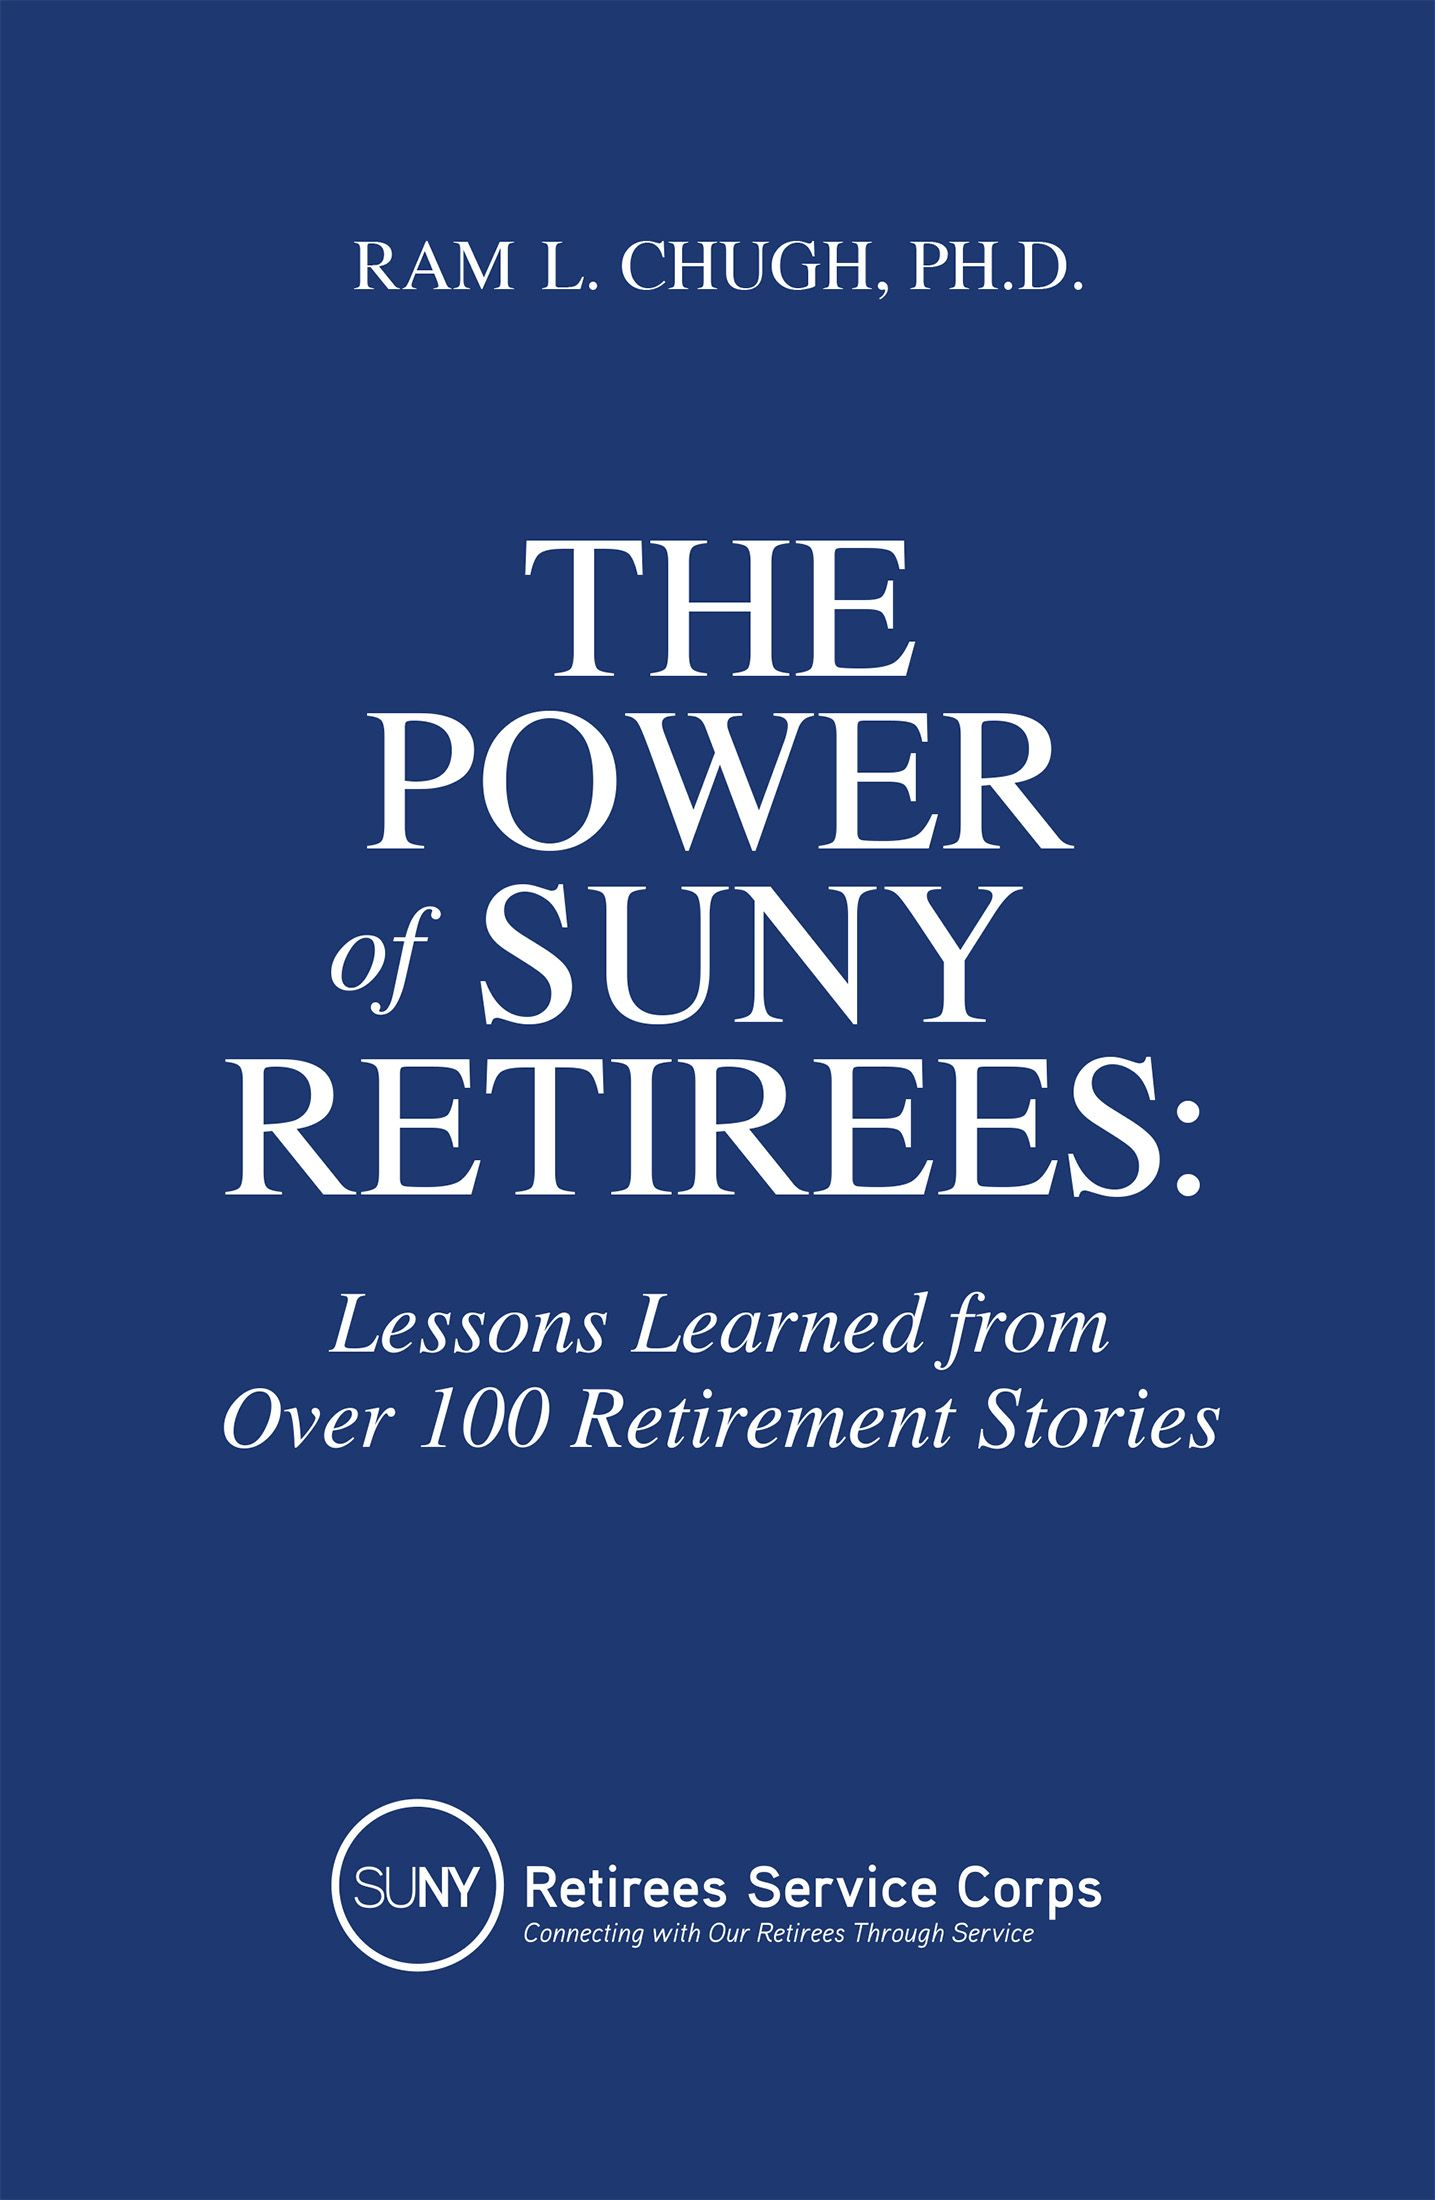 The Primary Goal Of The The Power Of Suny Retirees Lessons From Over 100 Retirement Stories Was To Find Out How Suny Retiree Lessons Learned Lesson Learning